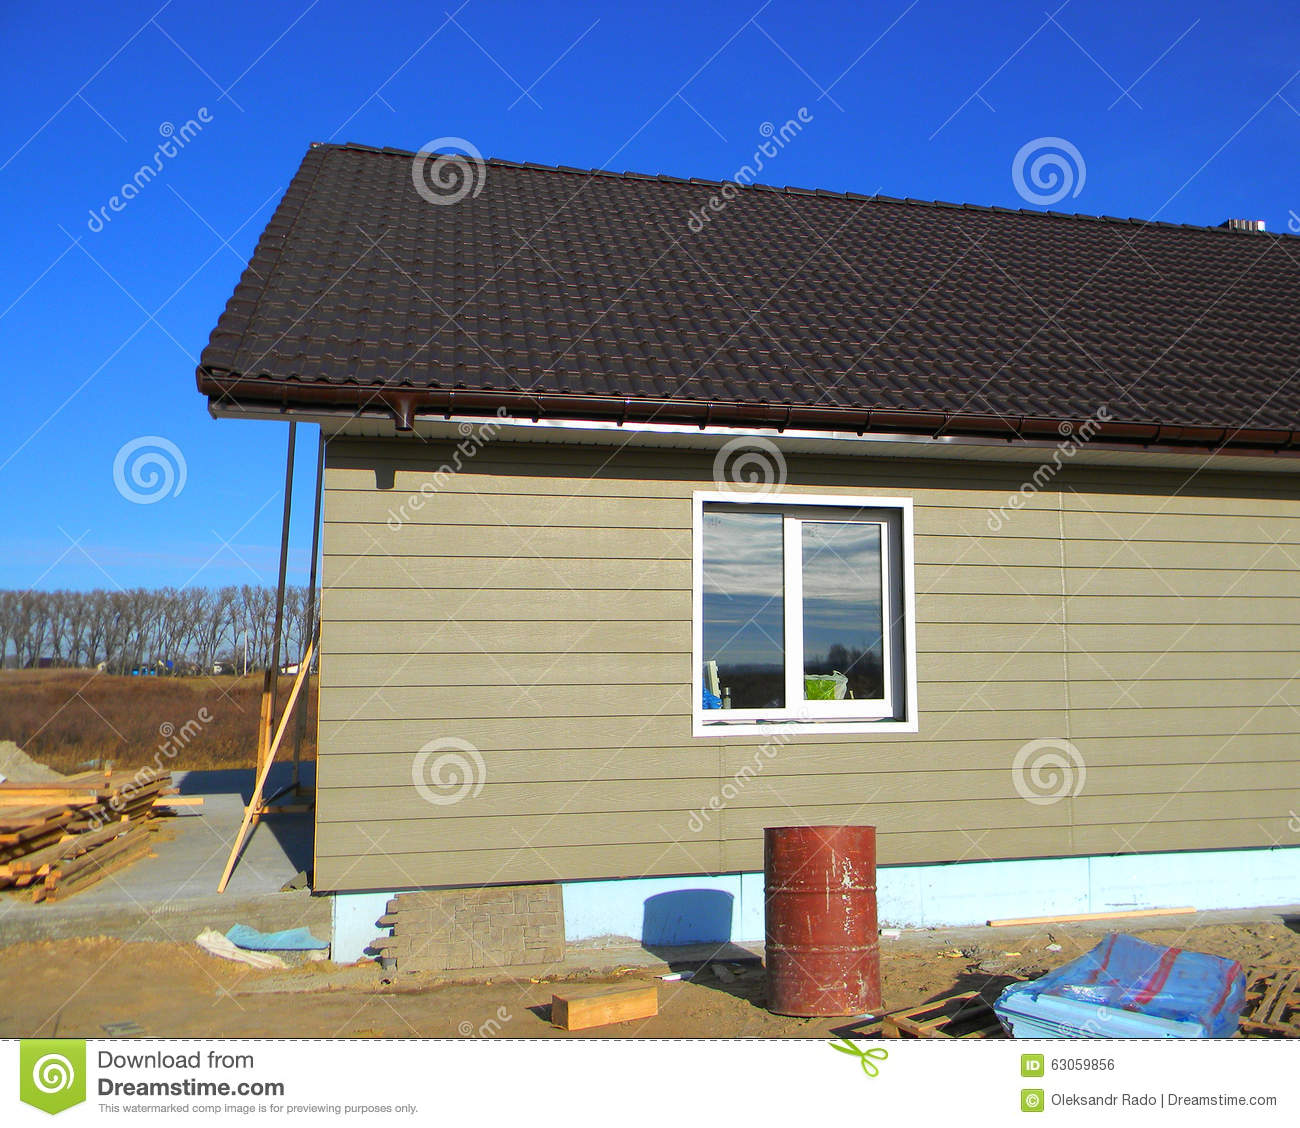 Building new house with plastic siding house wall roofing for House roof drain pipes